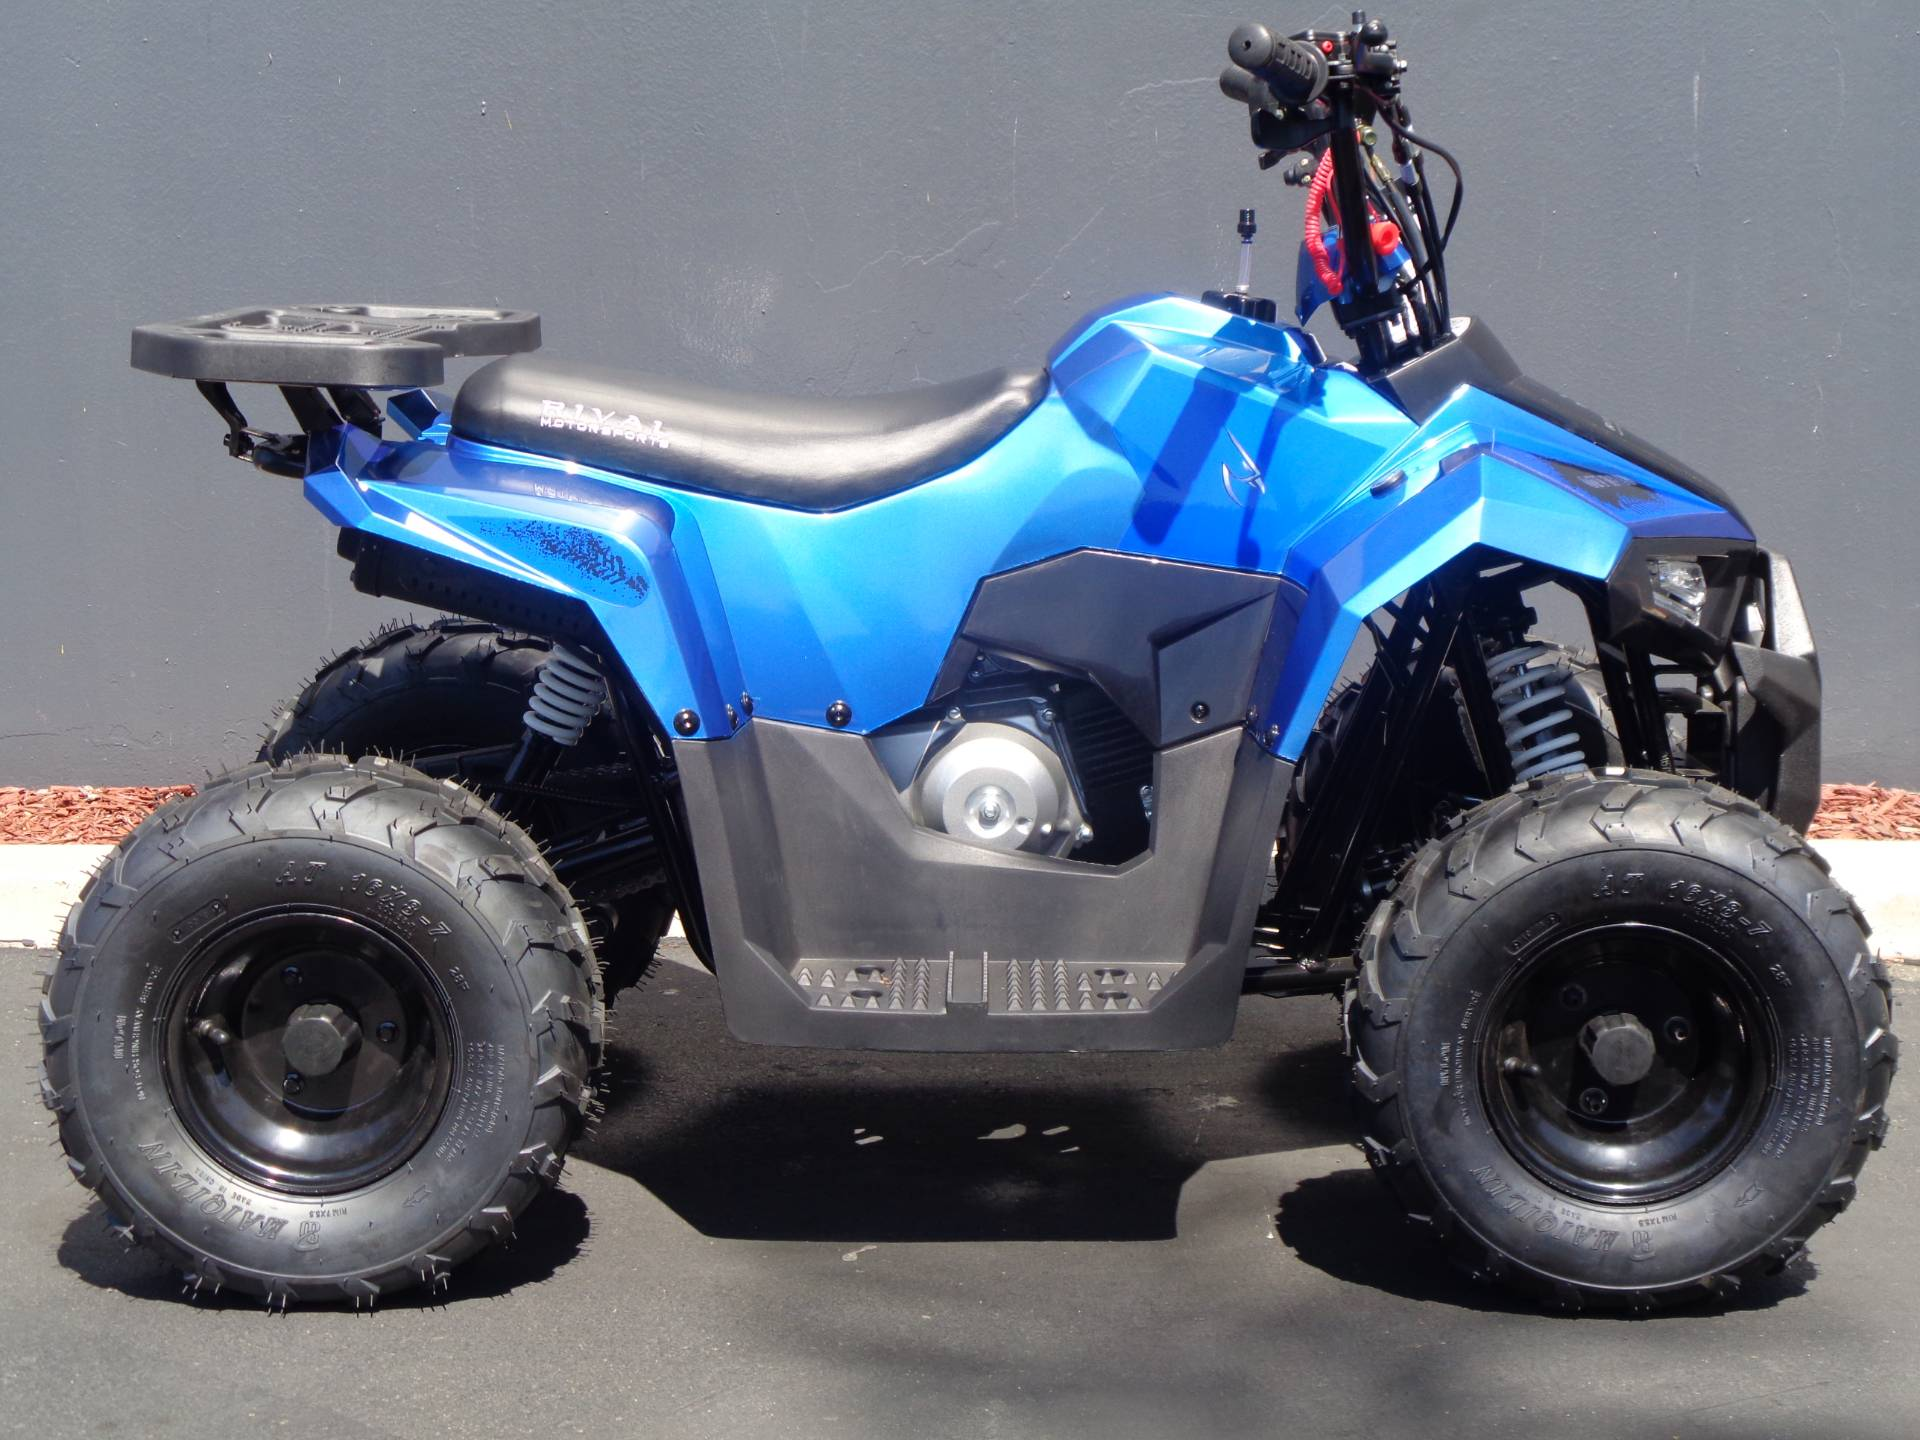 2019 Rival Motorsports CA MudHawk 6 in Chula Vista, California - Photo 1